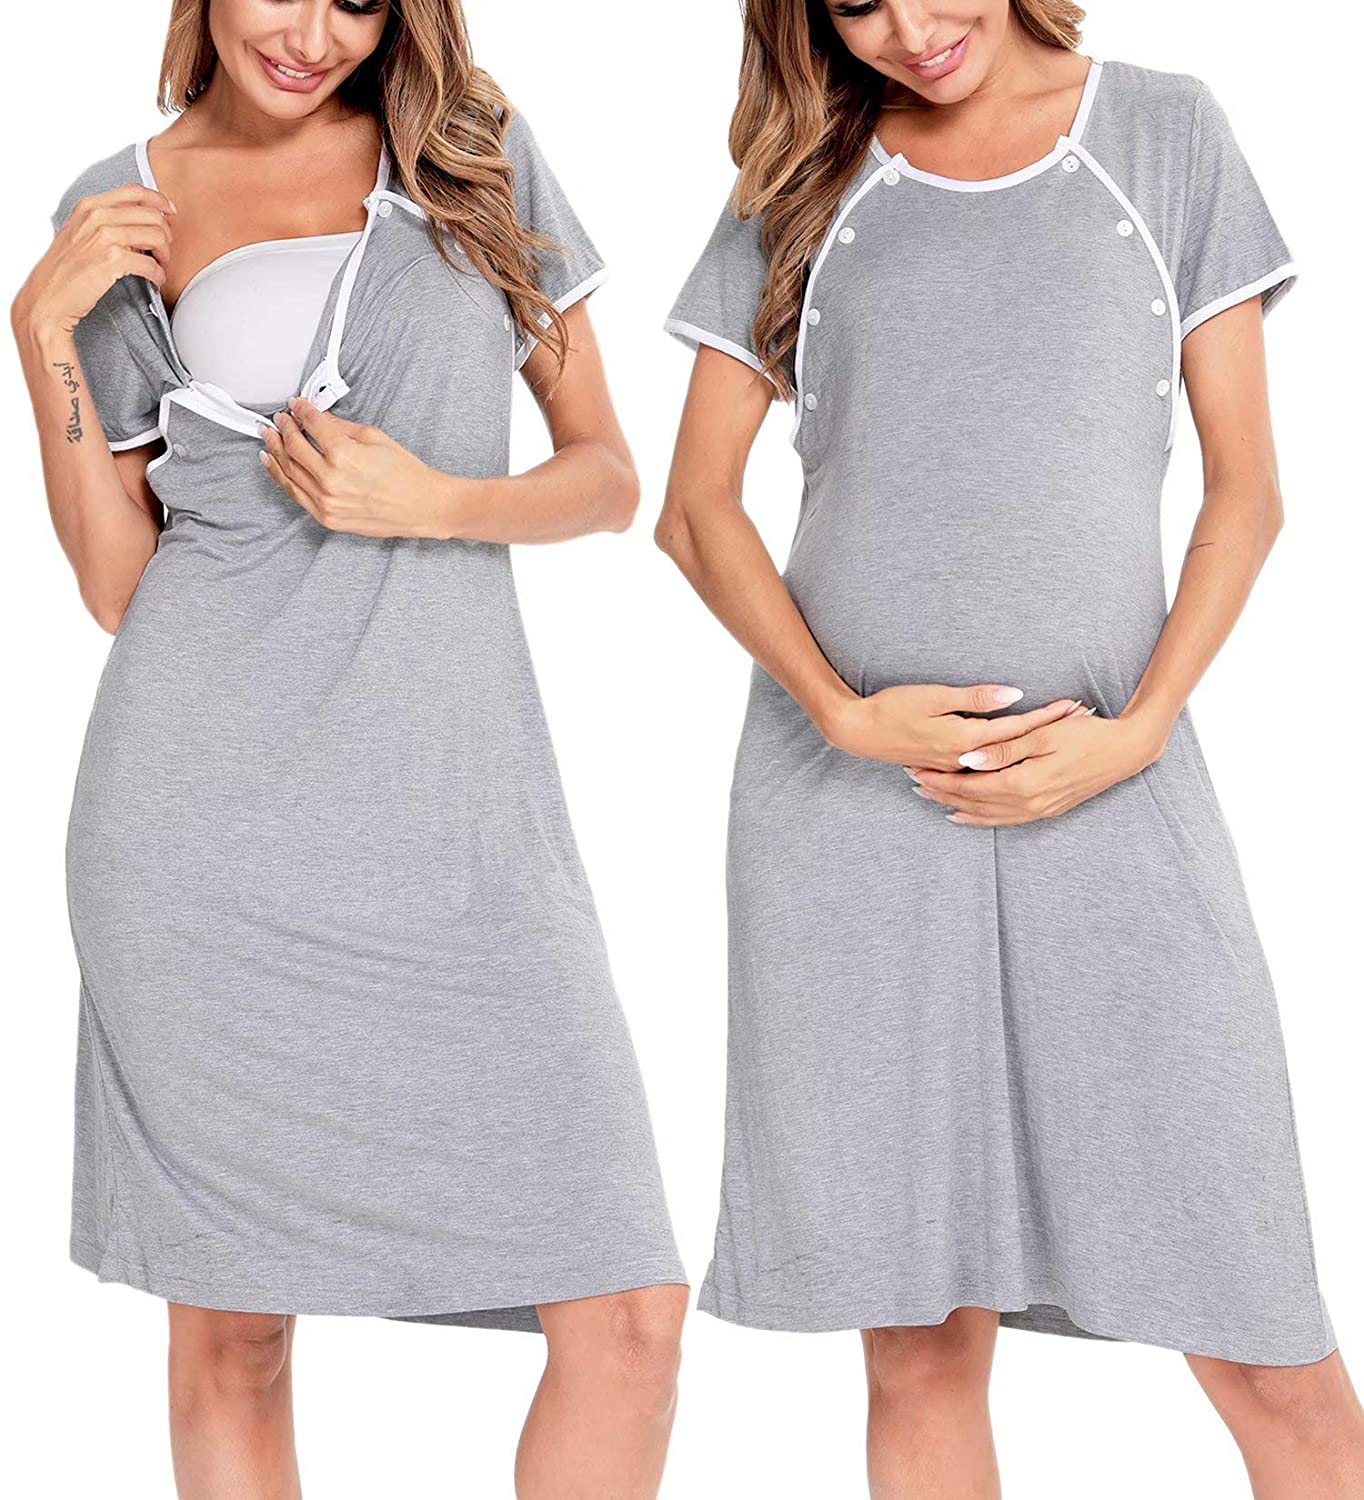 SWOMOG Nursing Nightgown free for Women Deliv Labor New Shipping Free and Breastfeeding